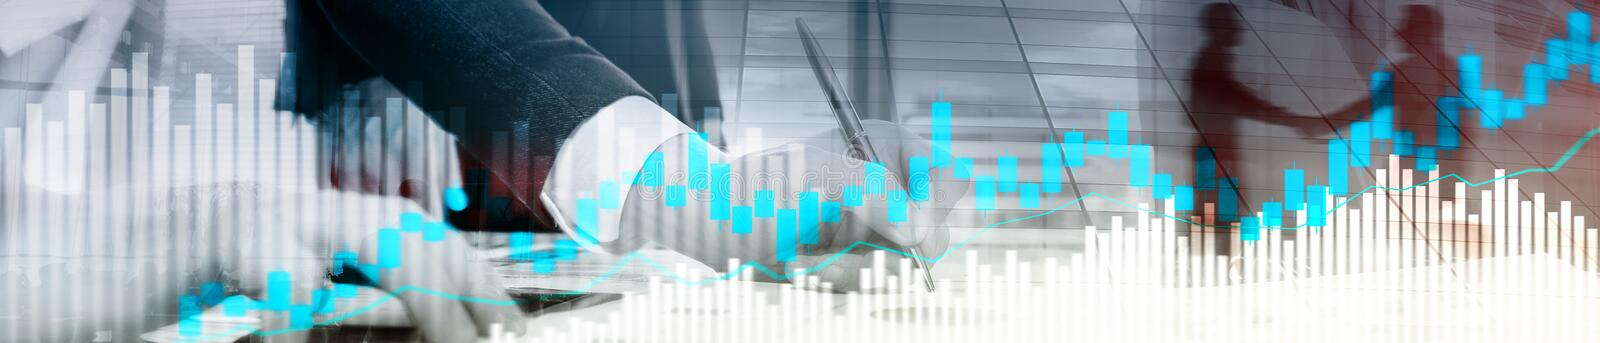 Online trading, FOREX, Investment concept on blurred business center background. Website header banner. royalty free stock image